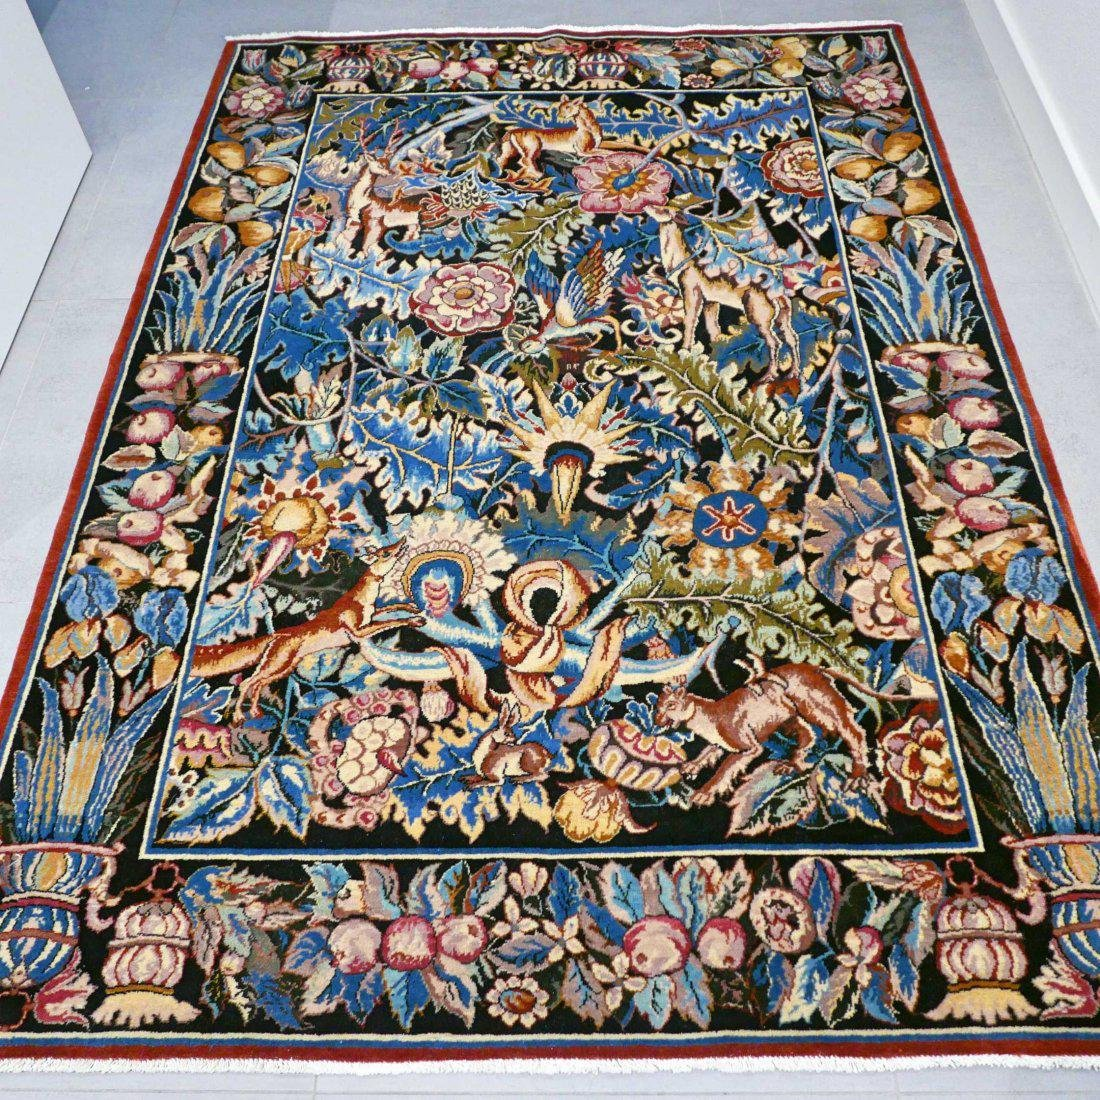 Tabriz Hand Knotted Rug 6.4x4.7 - 3